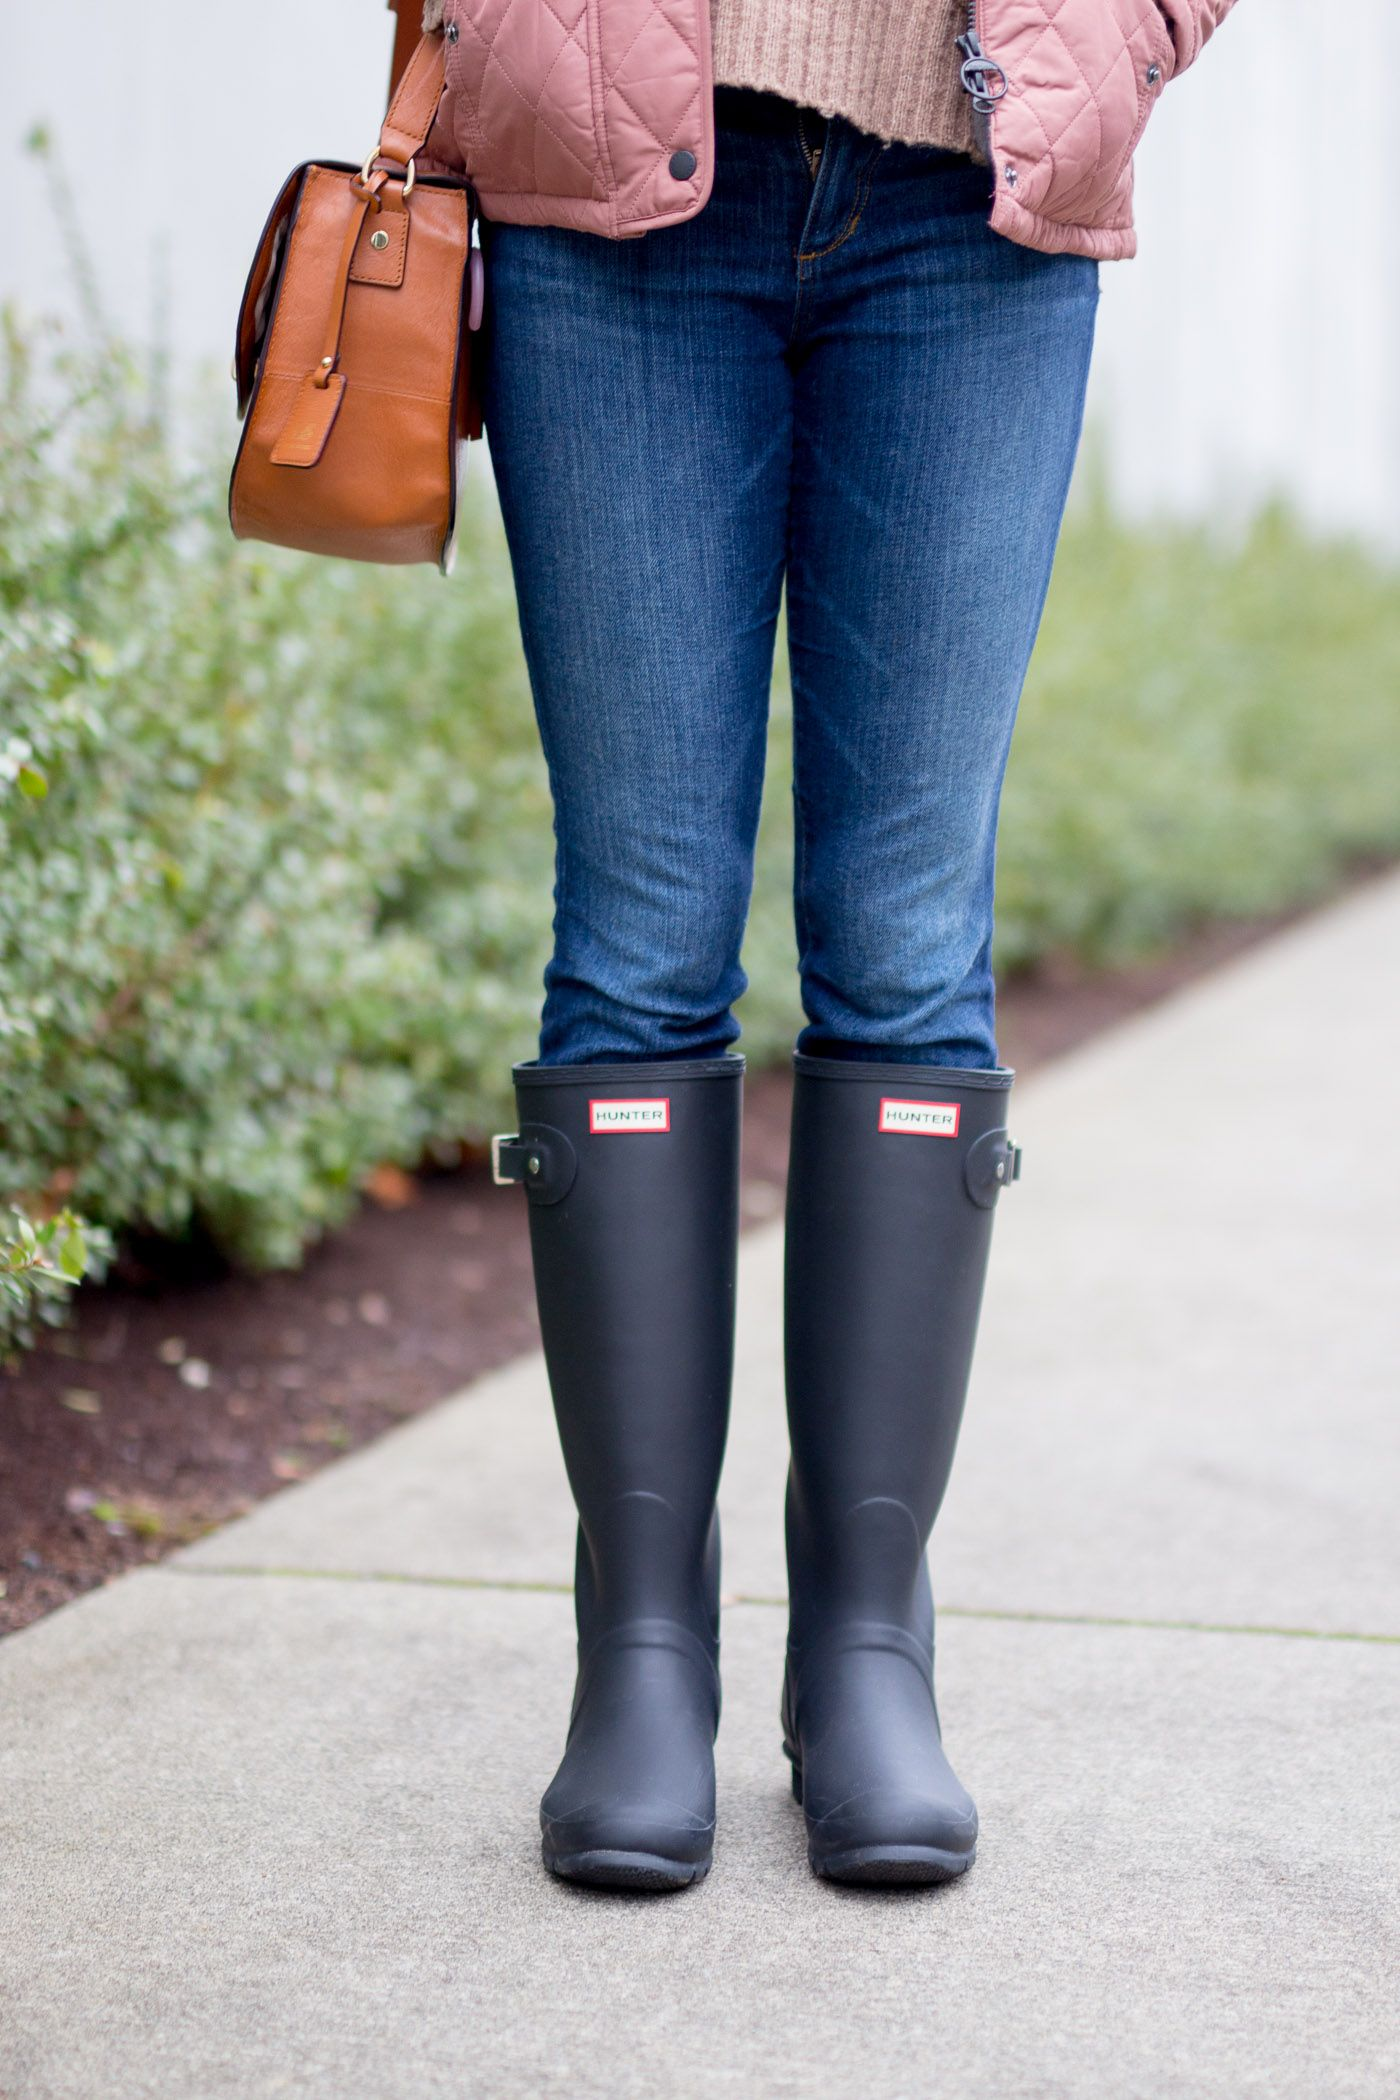 new product b6e64 ed1c5 How To Wear Hunter Boots In Winter | Boots rainy ...